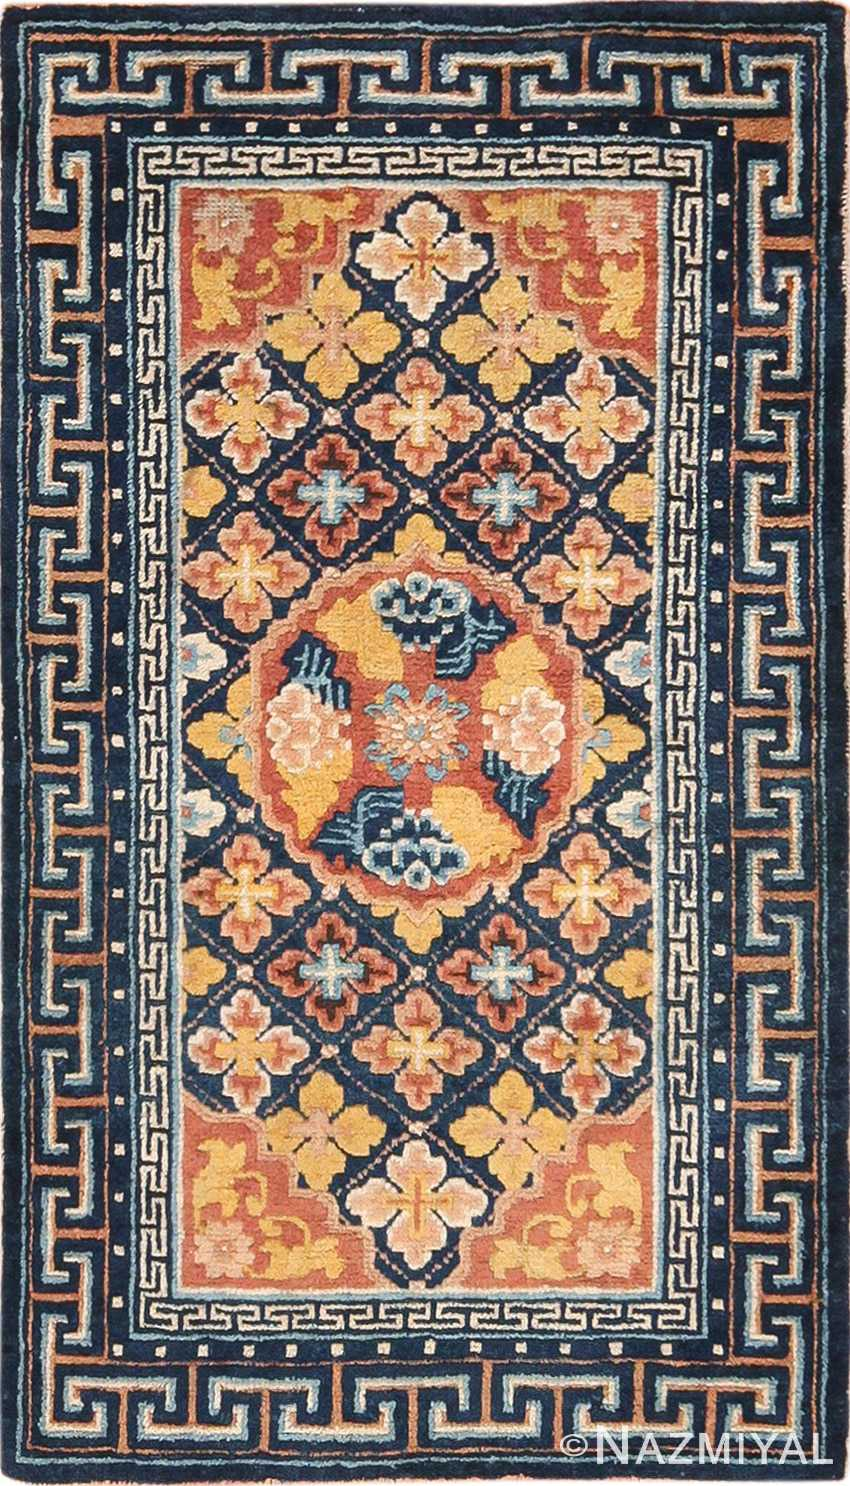 Small Scatter Size Antique Chinese Ningxia Rug 49793 - Nazmiyal